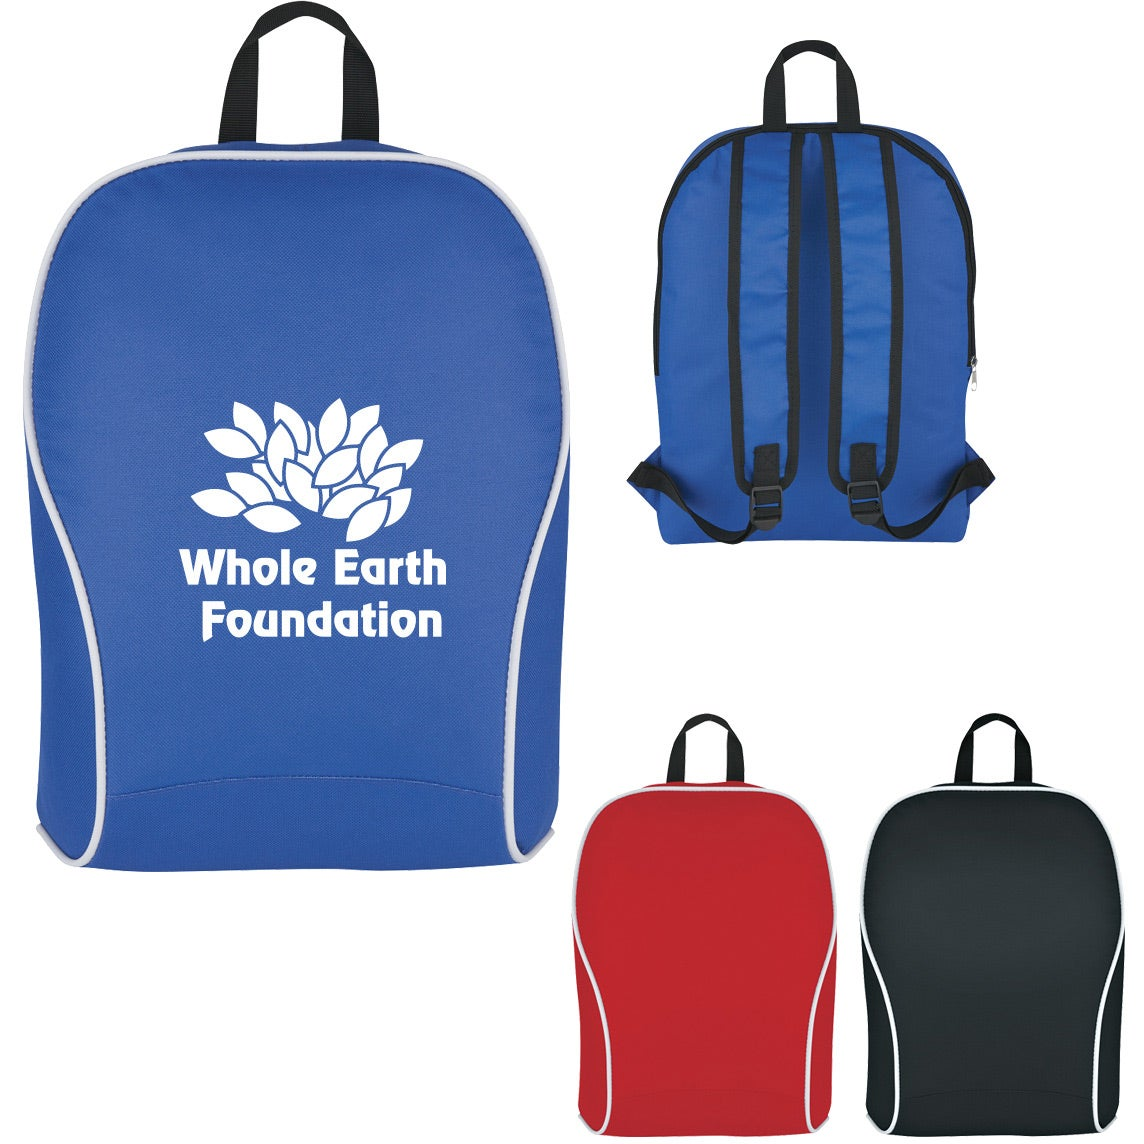 Promotional Economy Backpacks with Custom Logo for  6.30 Ea. fd67c0ccc7ed1